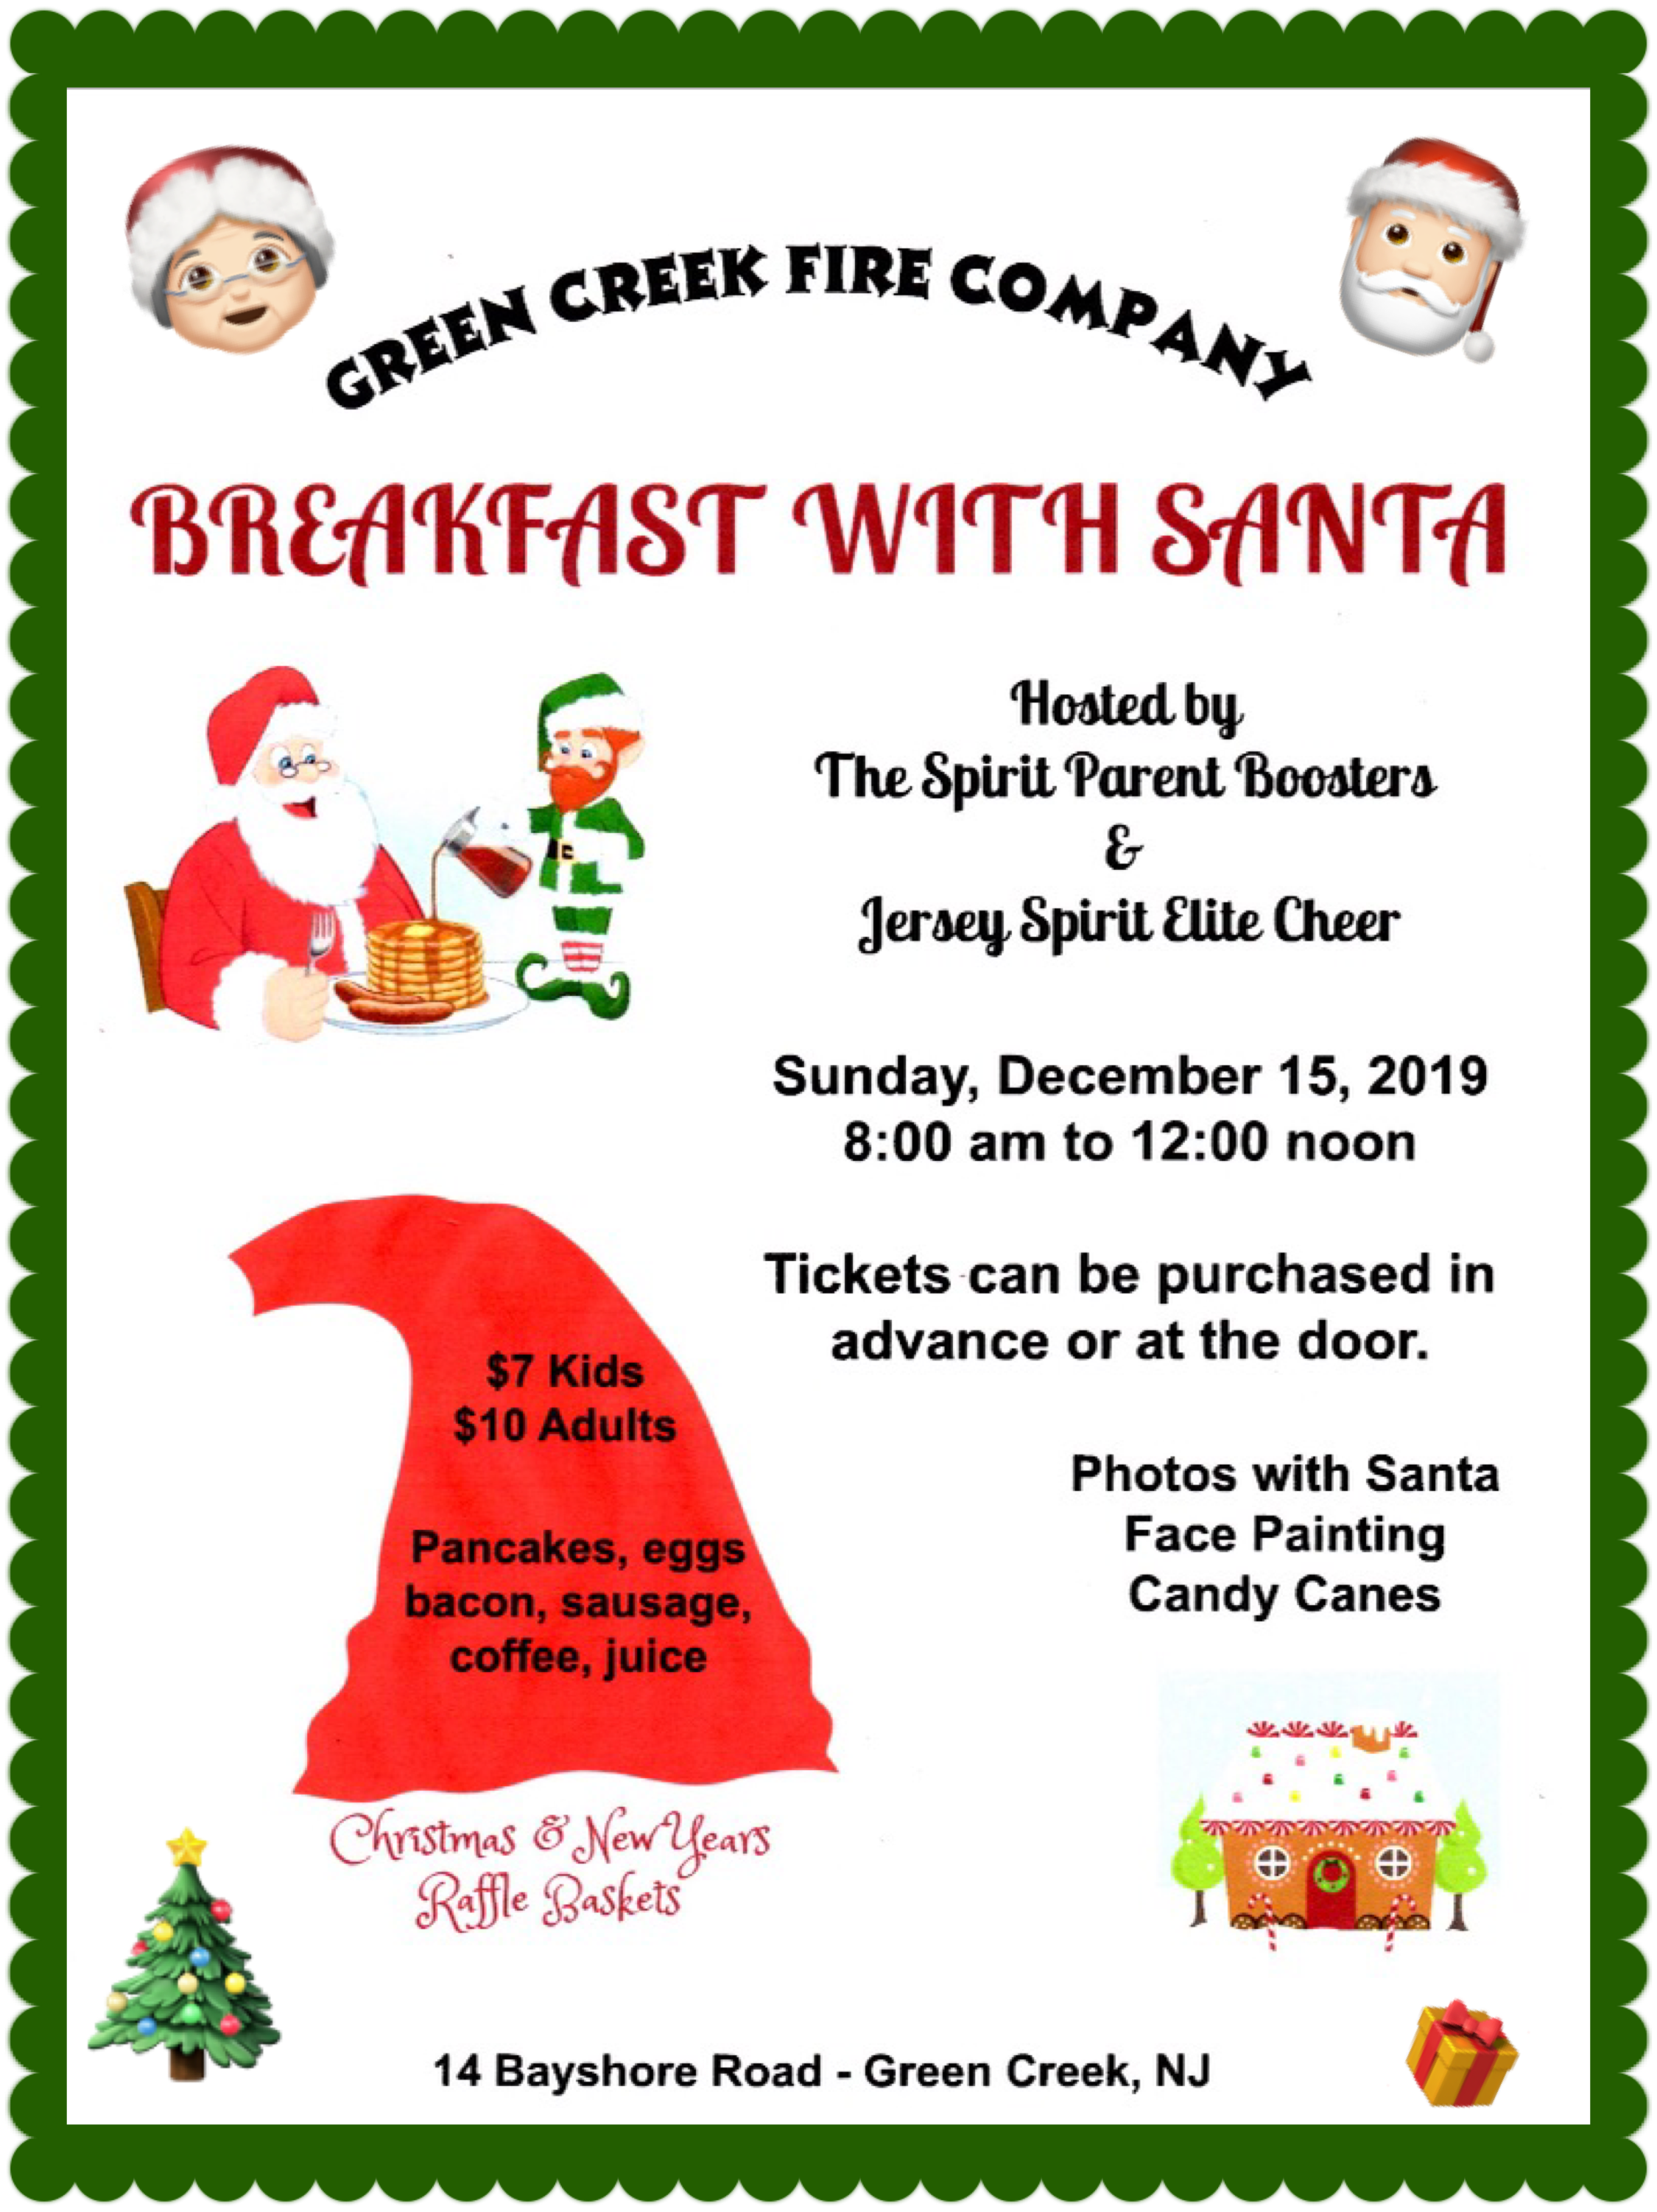 Breakfast with Santa image 1